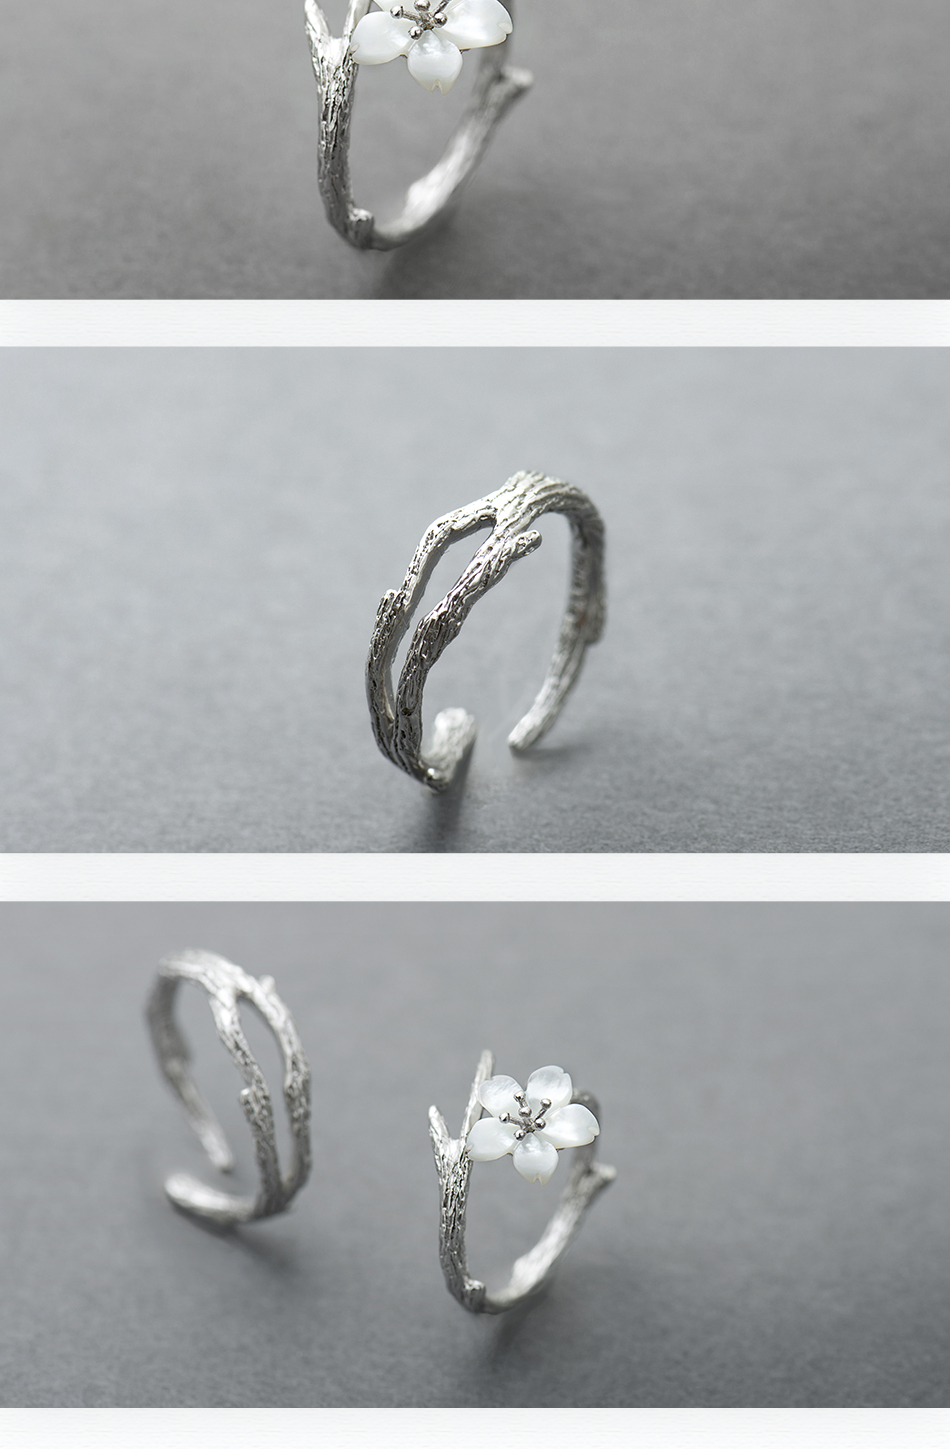 HTB1t.OjKeOSBuNjy0Fdq6zDnVXao Thaya White Cherry Blossom Silver Ring s925 Silver Natural Pearl Shell Flower Branch Rings for Women Elegant Ladies Jewelry